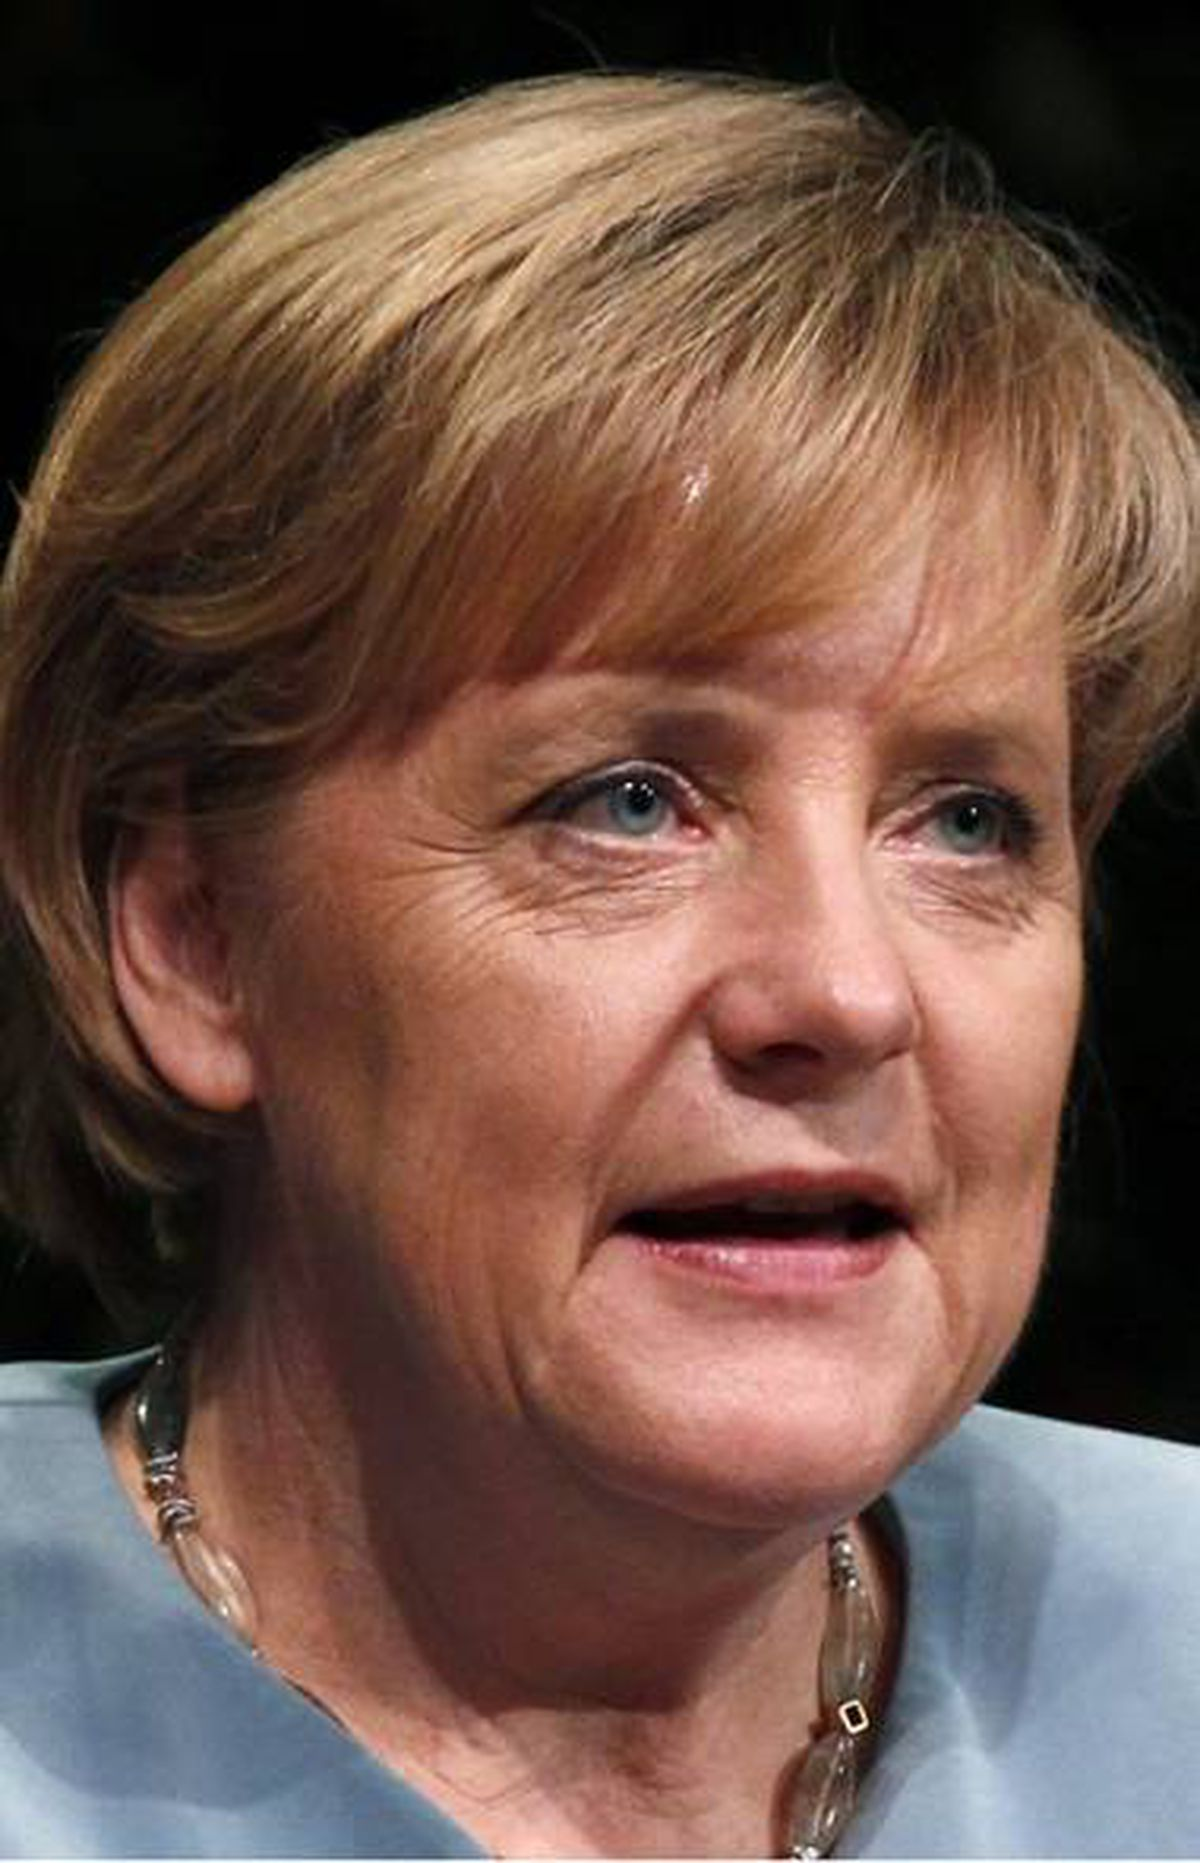 GERMANY: Der Spiegel, a German magazine, reported that the documents portrayed German Chancellor Angela Merkel and Foreign Minister Guido Westerwelle in unflattering terms. It said American diplomats saw Ms. Merkel as risk-averse and Mr. Westerwelle as largely powerless.